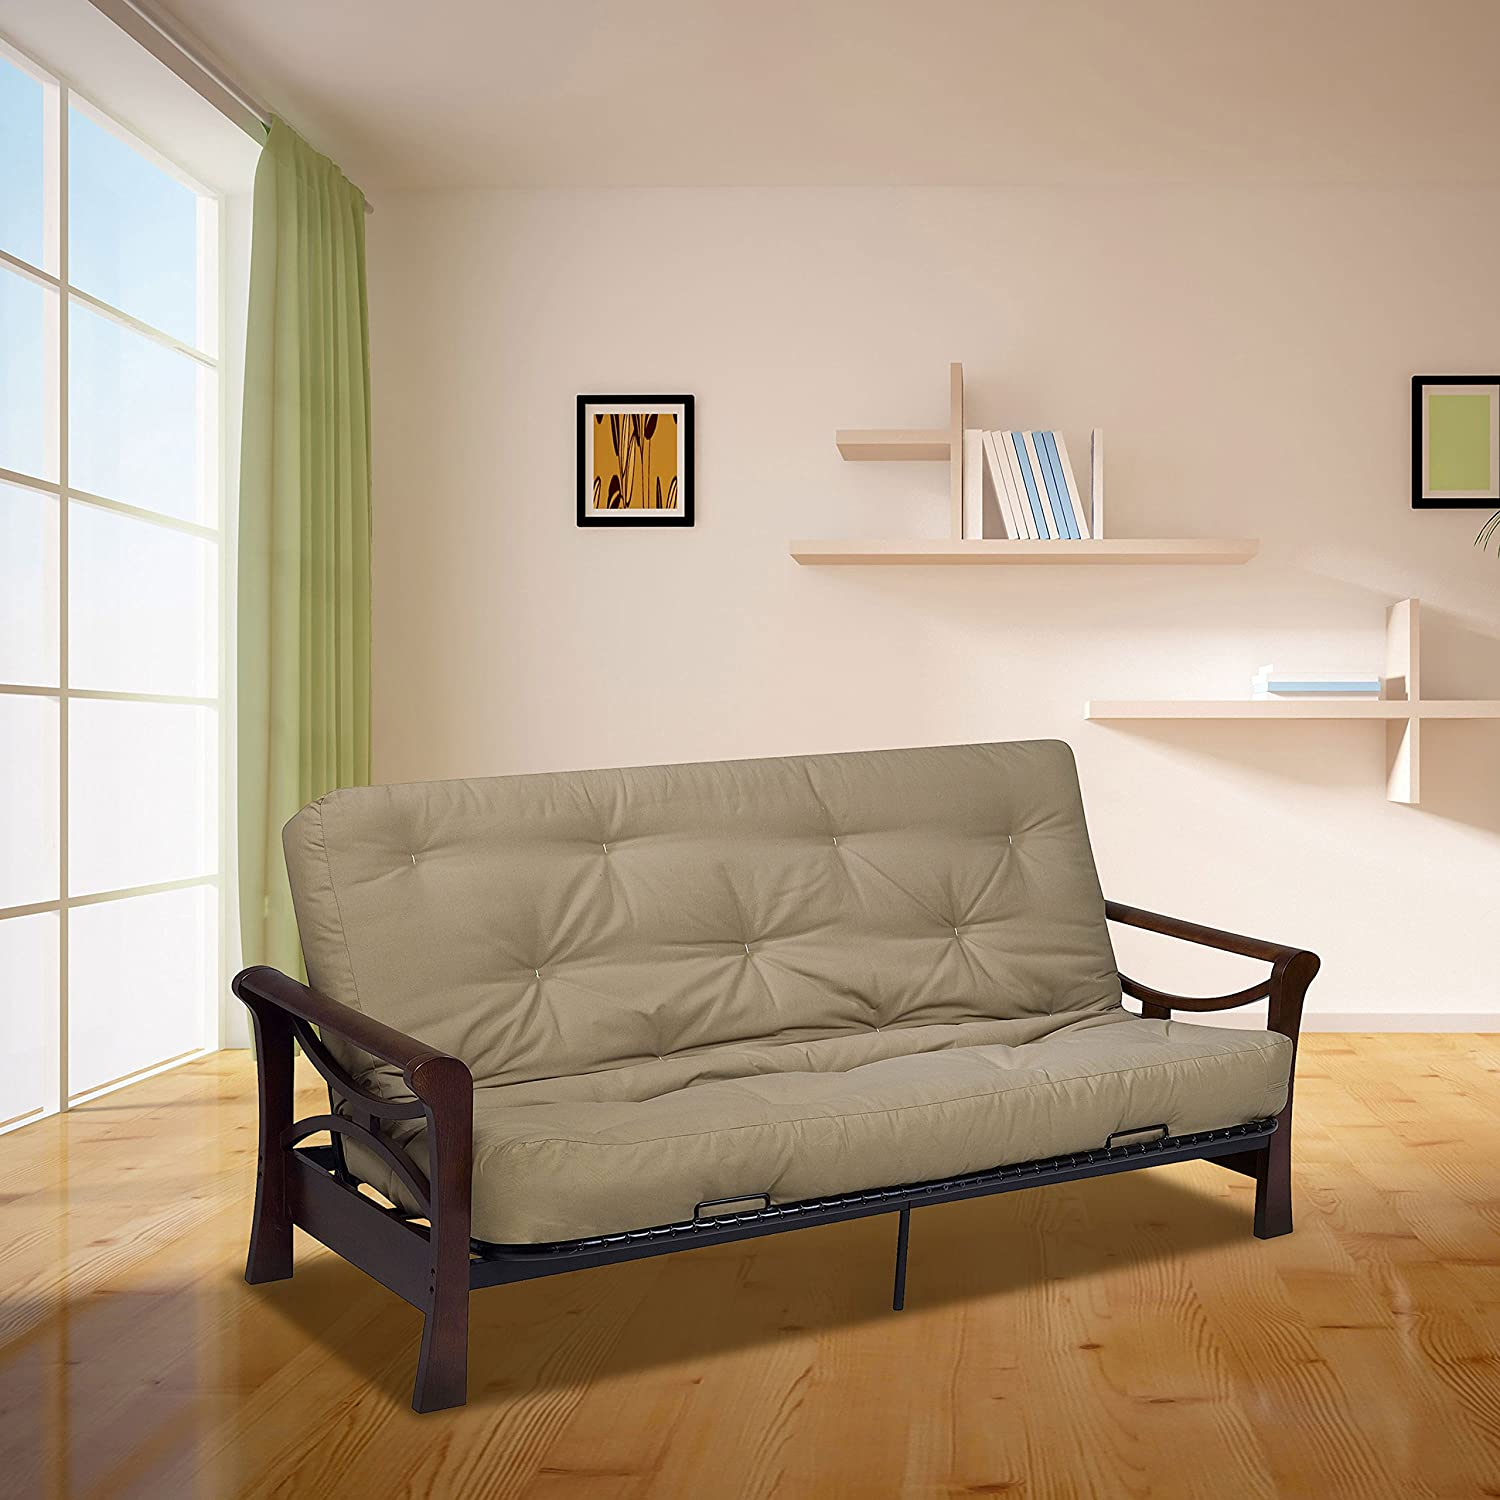 Top 10 Best Futon Mattress (2020 Reviews & Buying Guide) 1